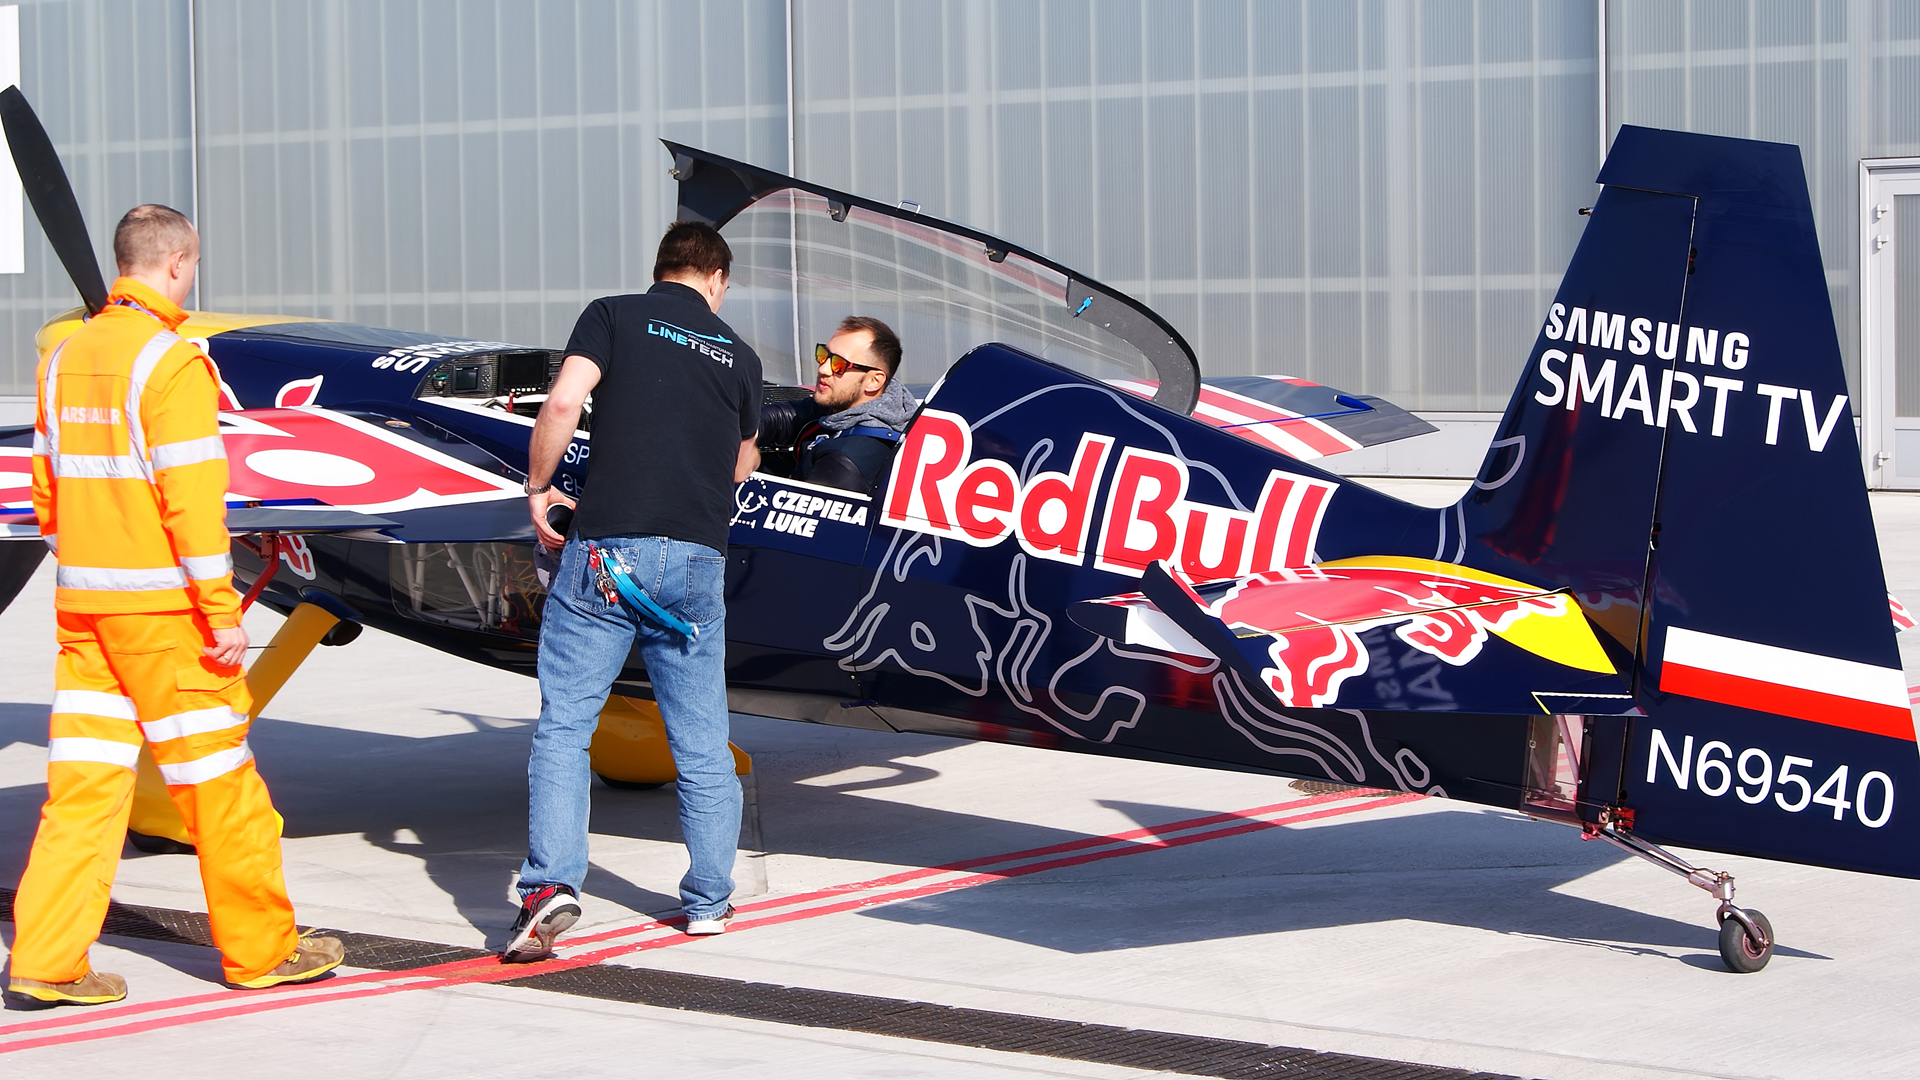 red bull pilot air race czepiela